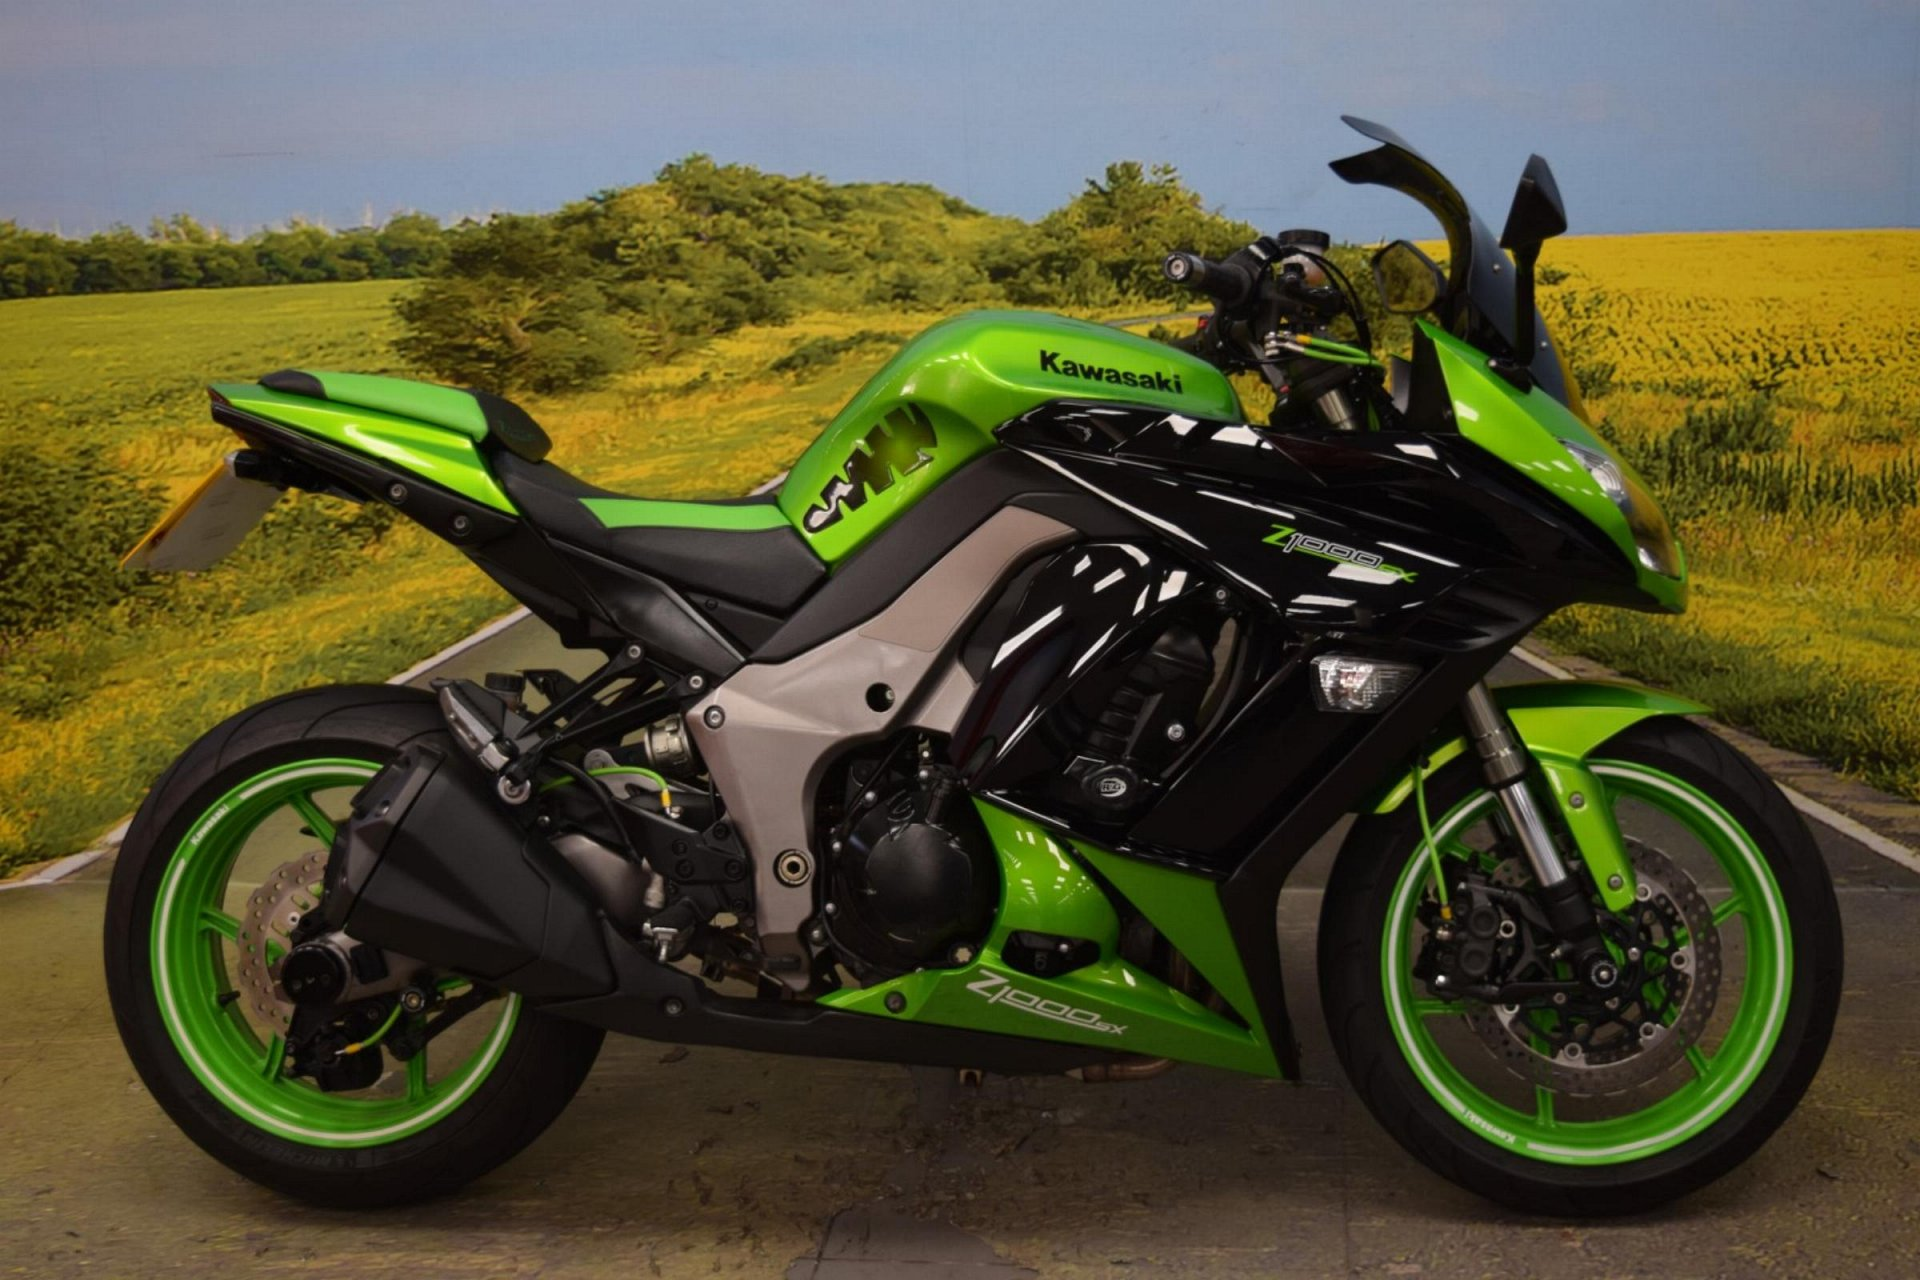 2012 Kawasaki Z1000 SX for sale in Staffordshire